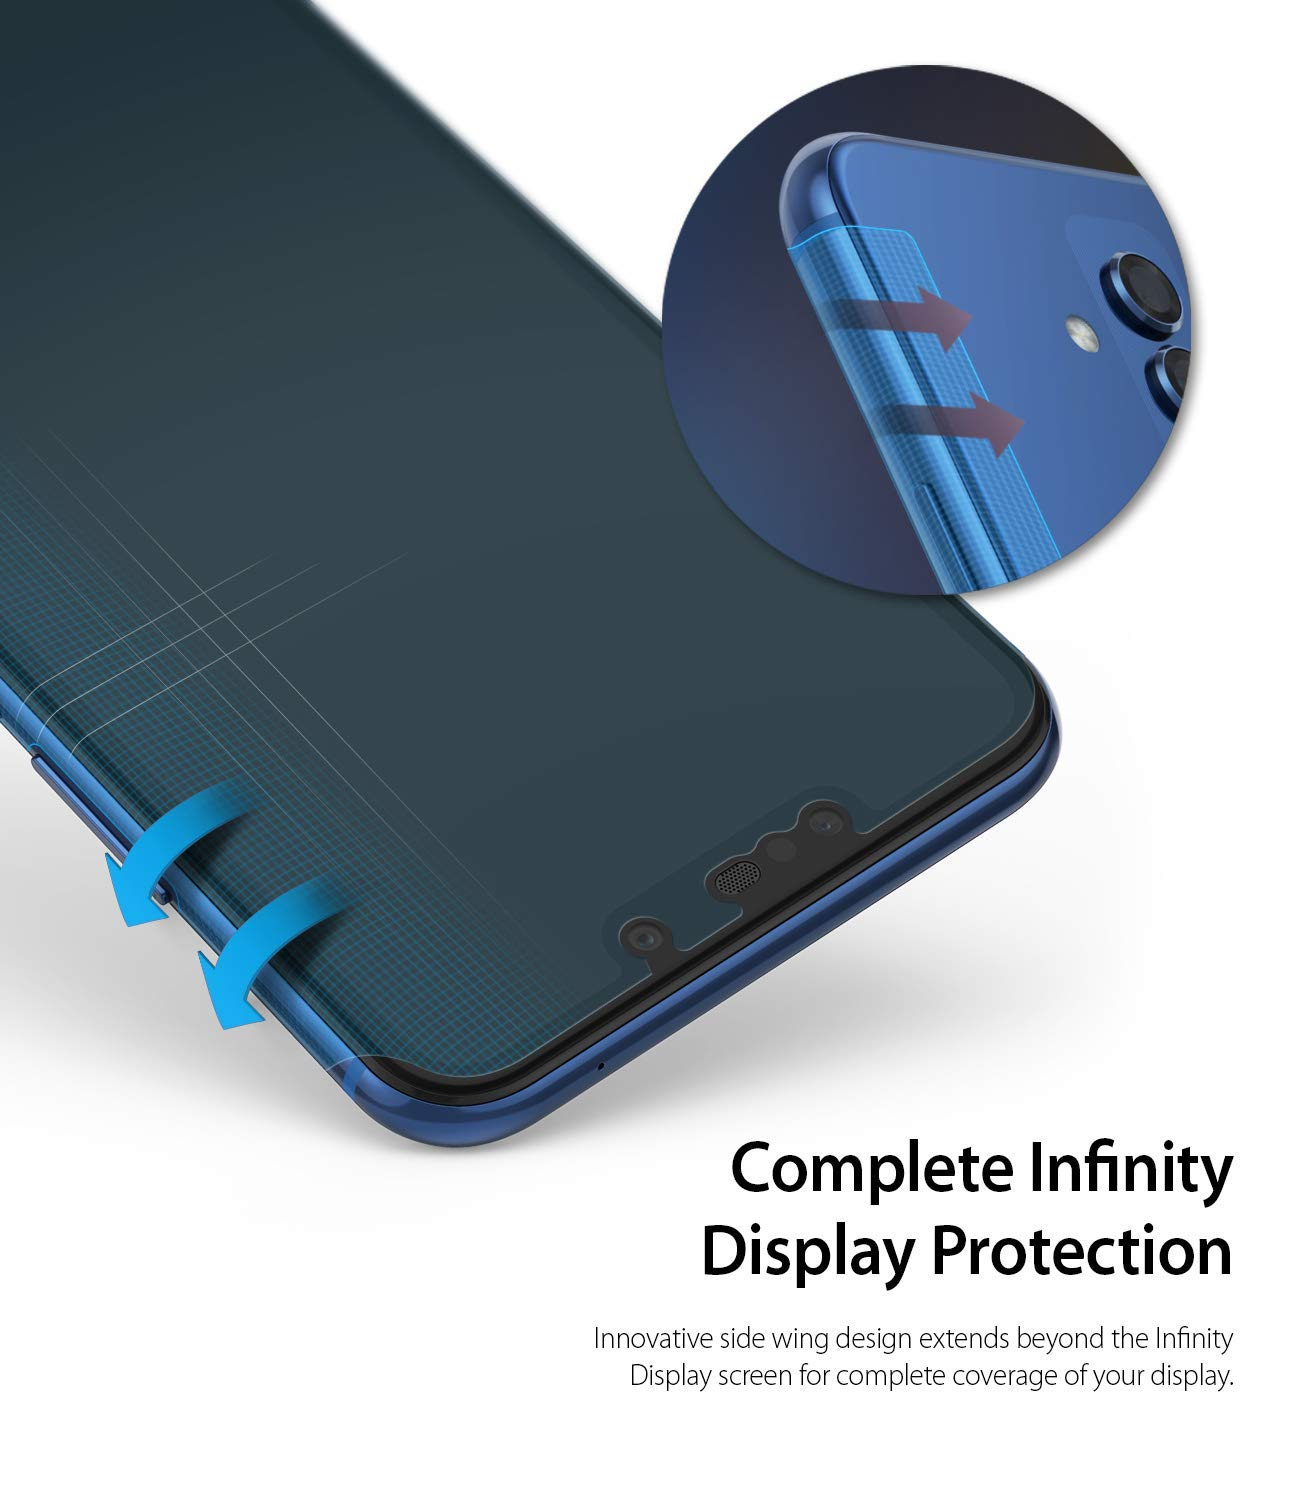 complete infinity display protection with innovative wing system